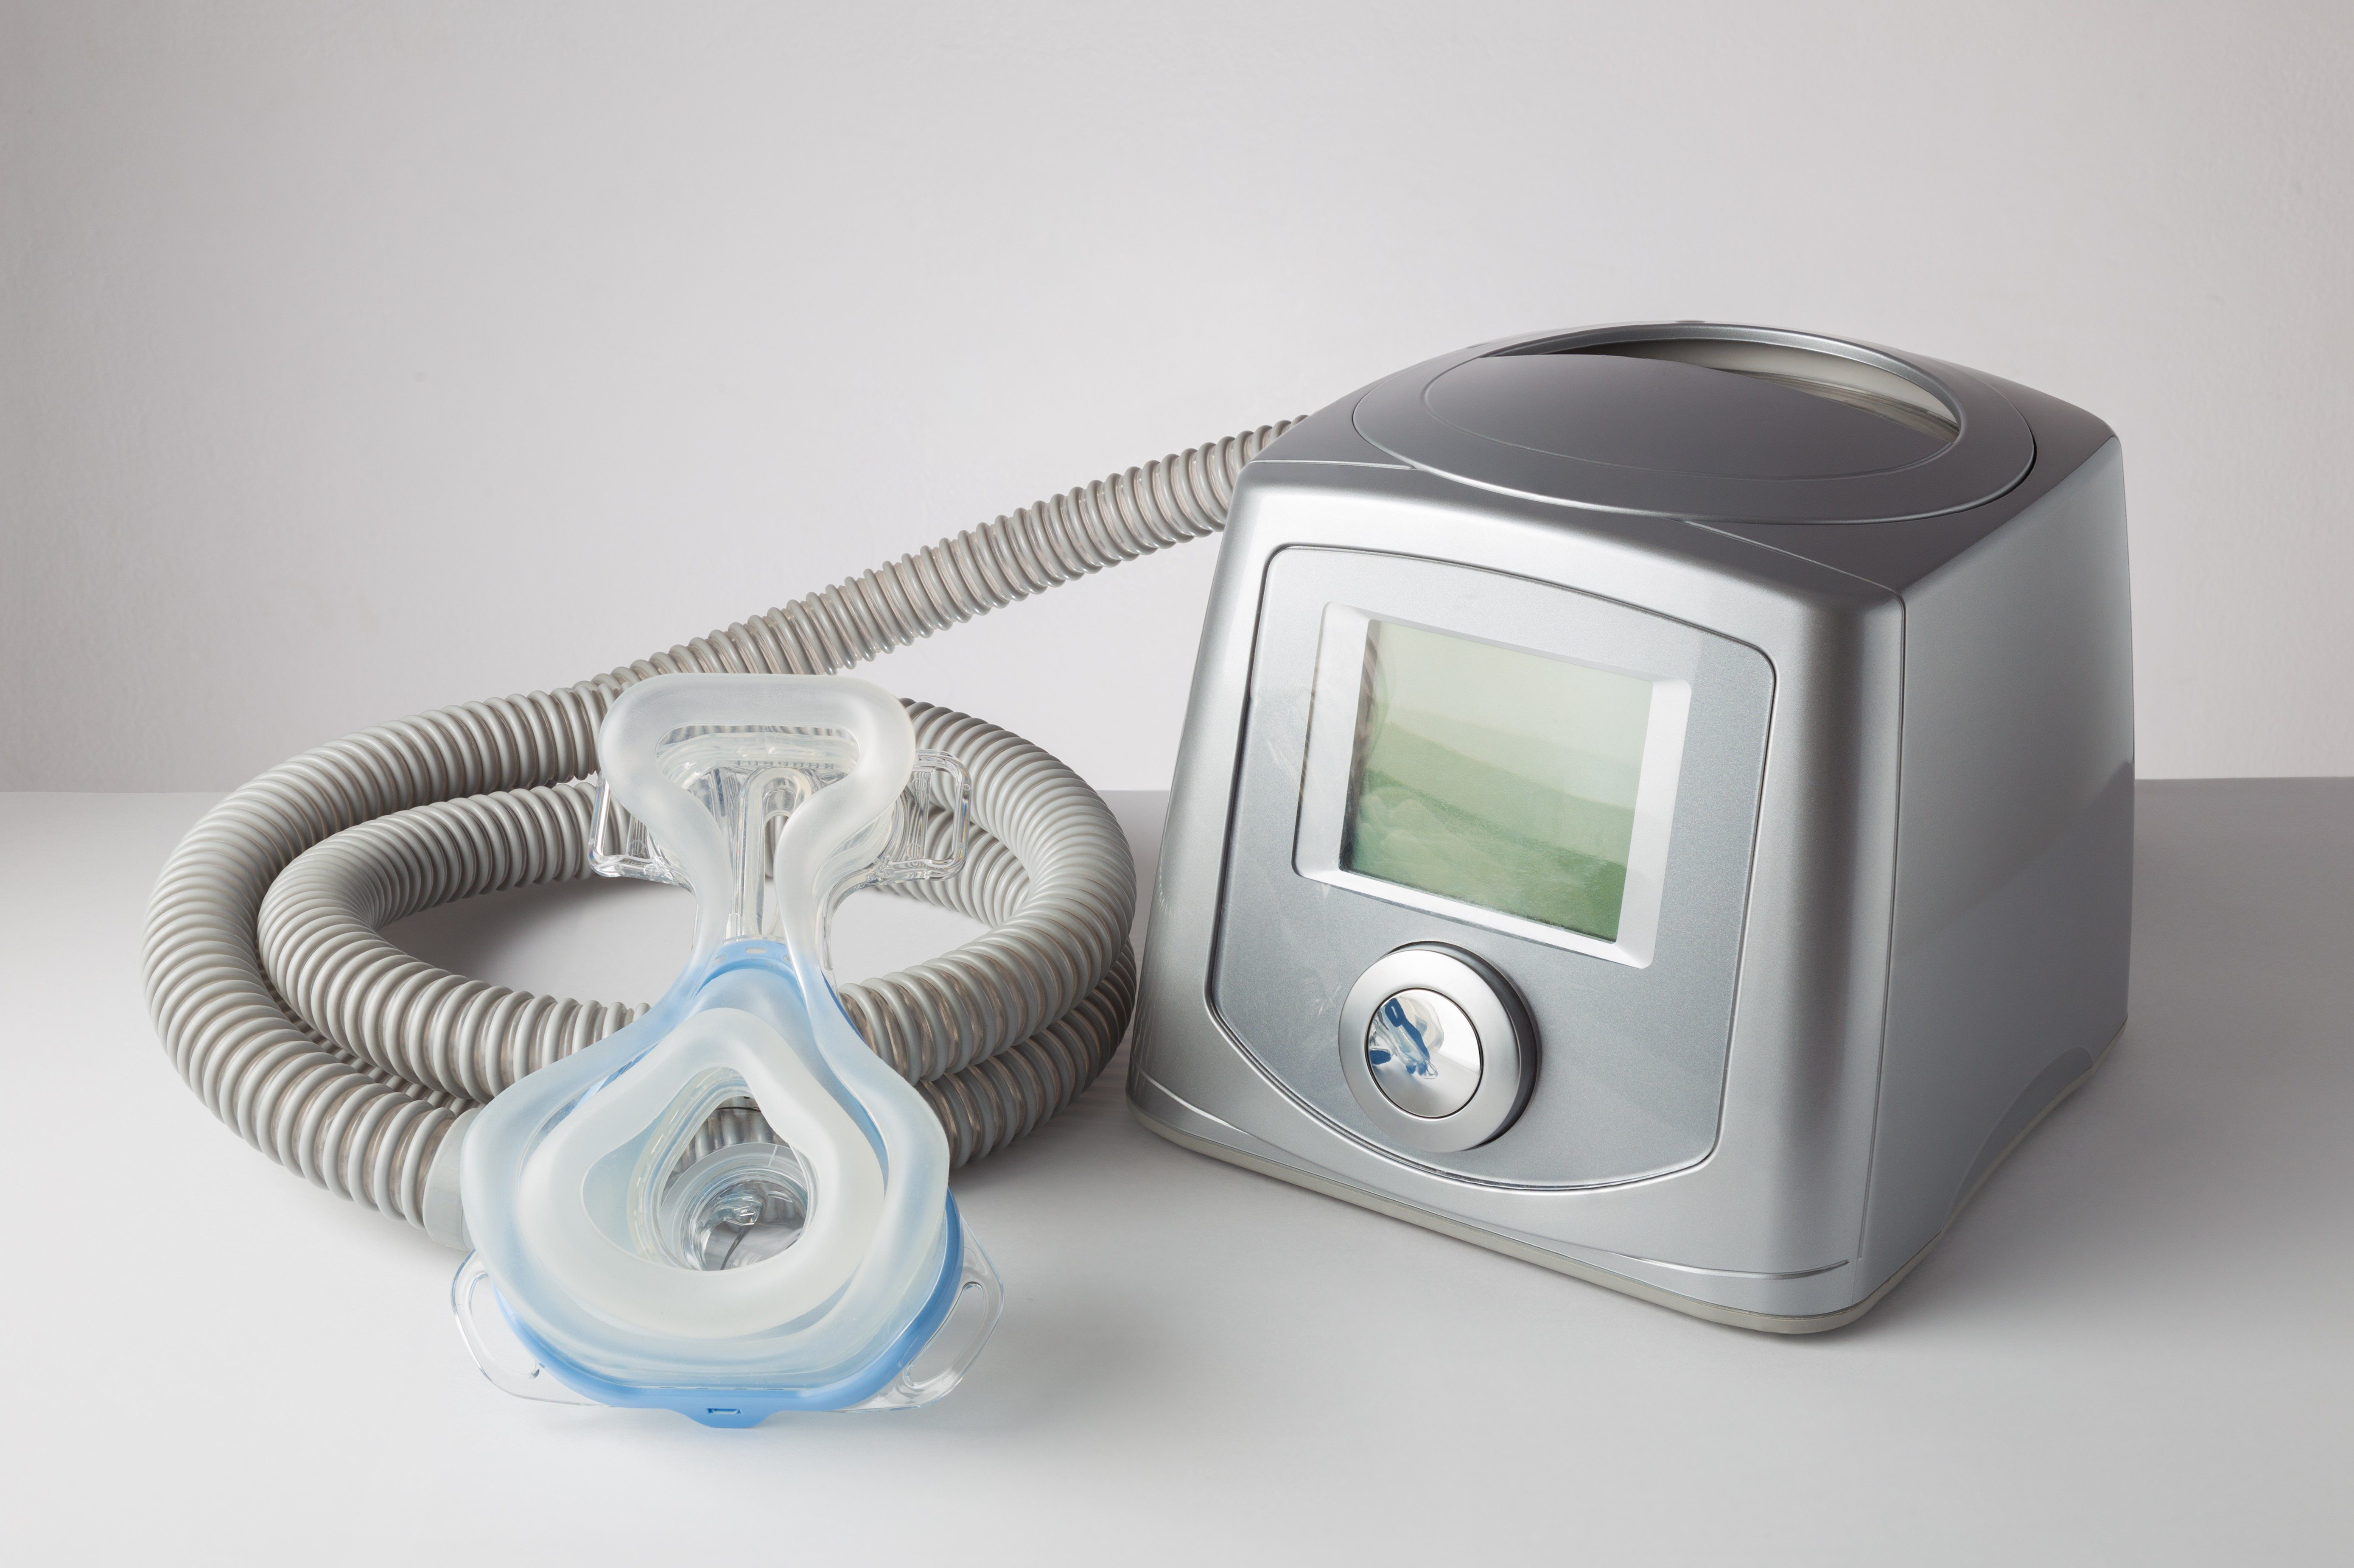 CPAP machine with mask and hose, for people with sleep apnea, respiratory, or breathing disorder